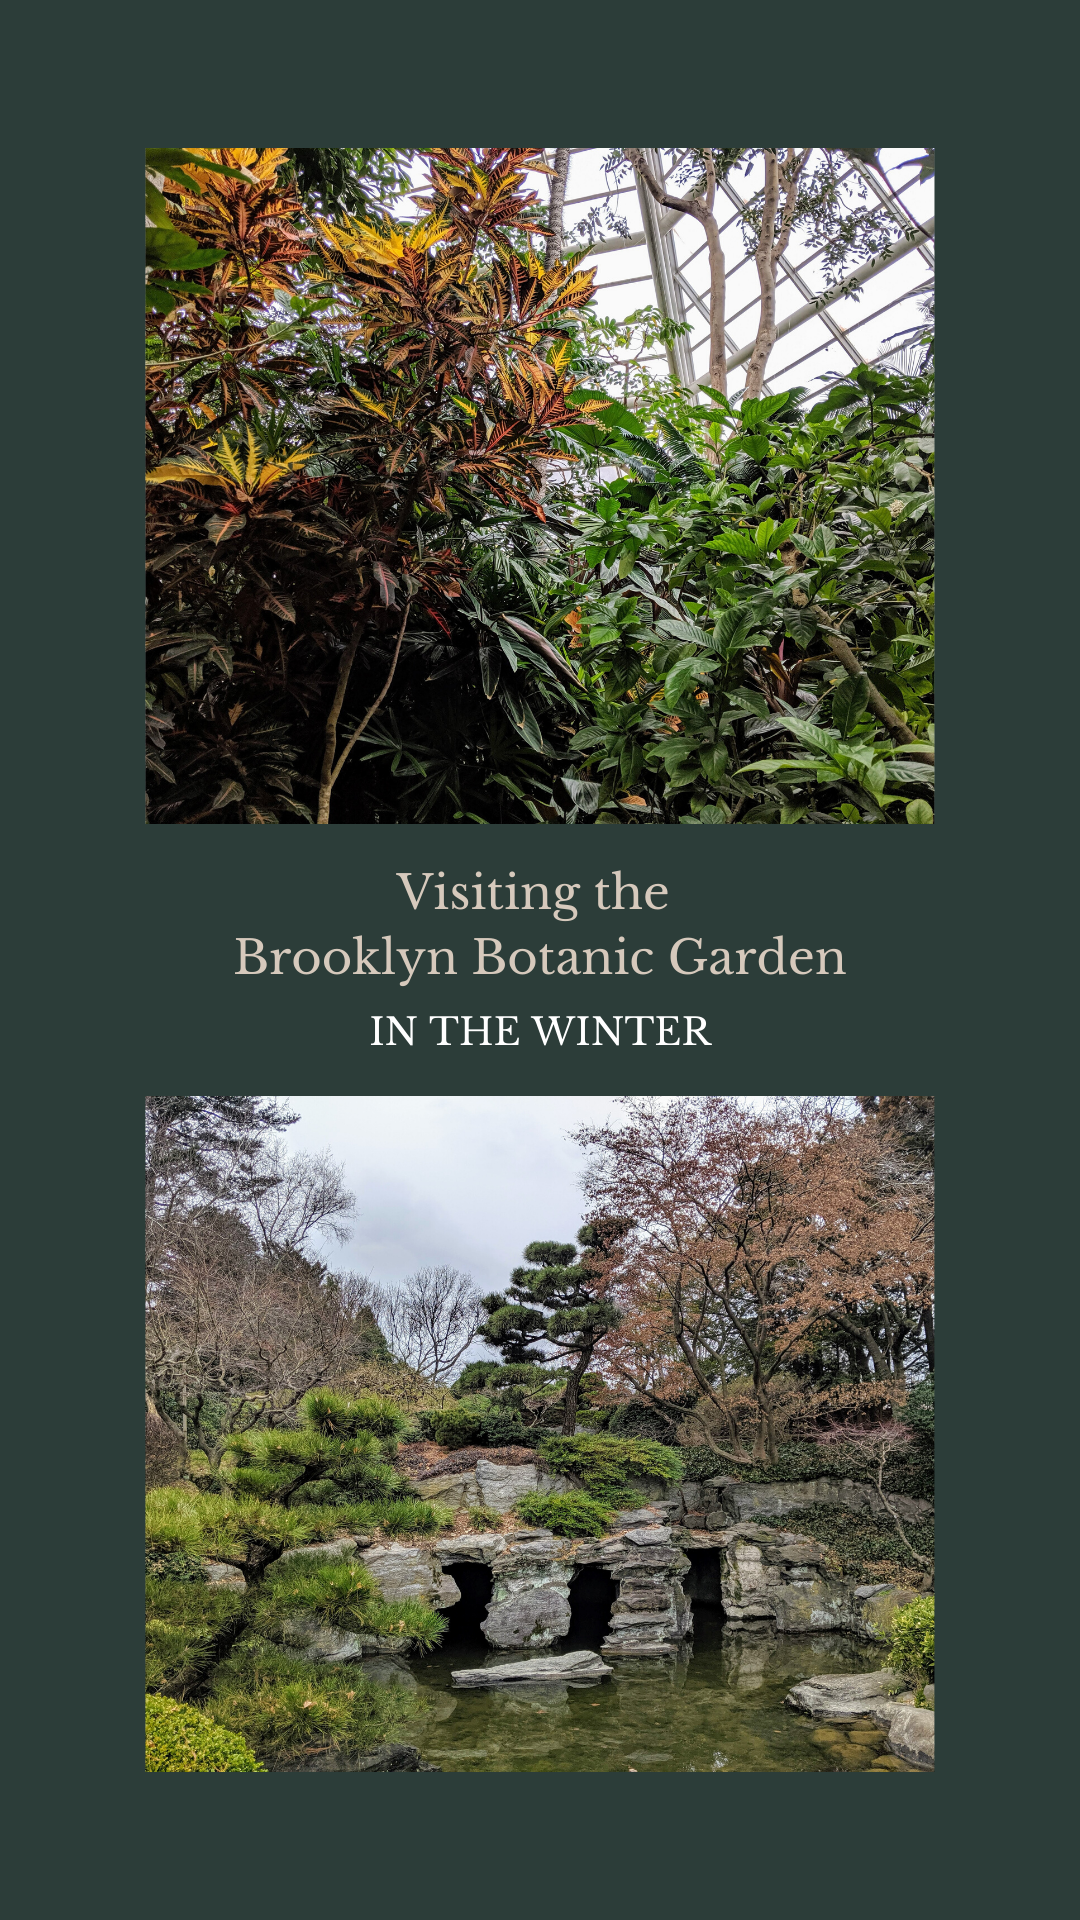 Should You Visit the Brooklyn Botanic Garden in the Winter